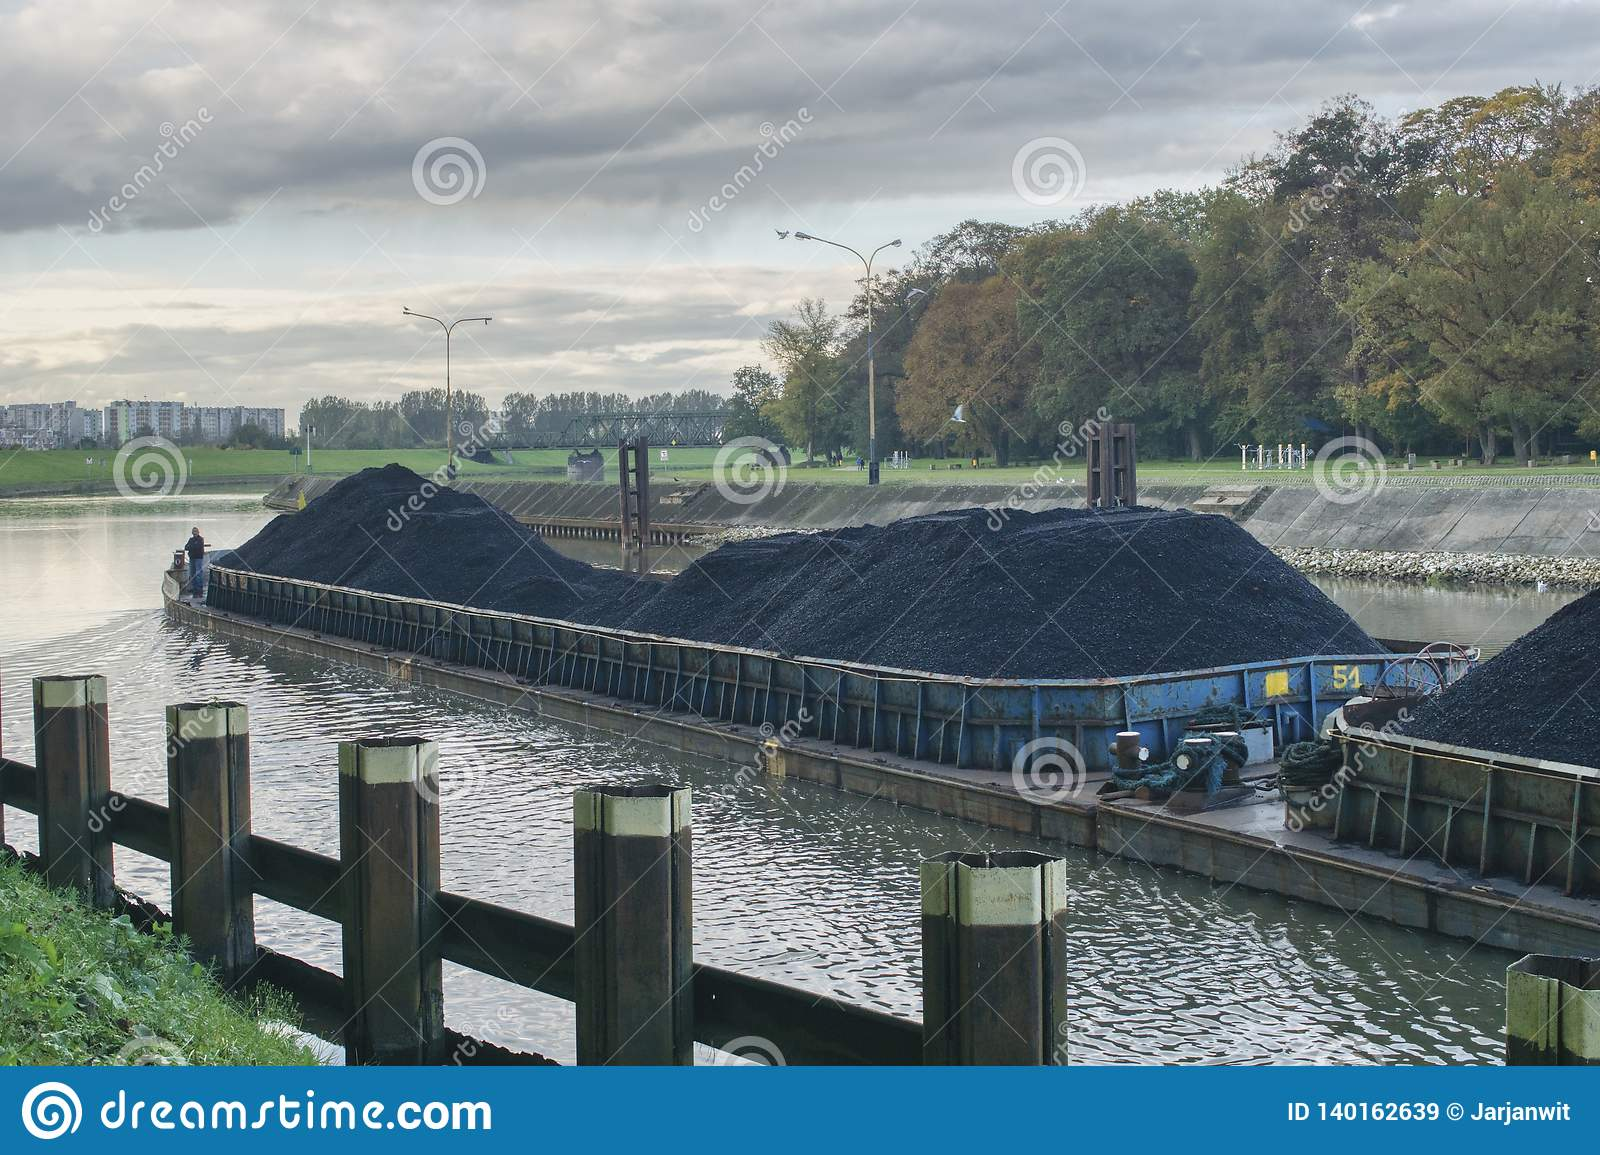 The barge flows along the river, transports coal to the power plant, repairing water routes, and green transport